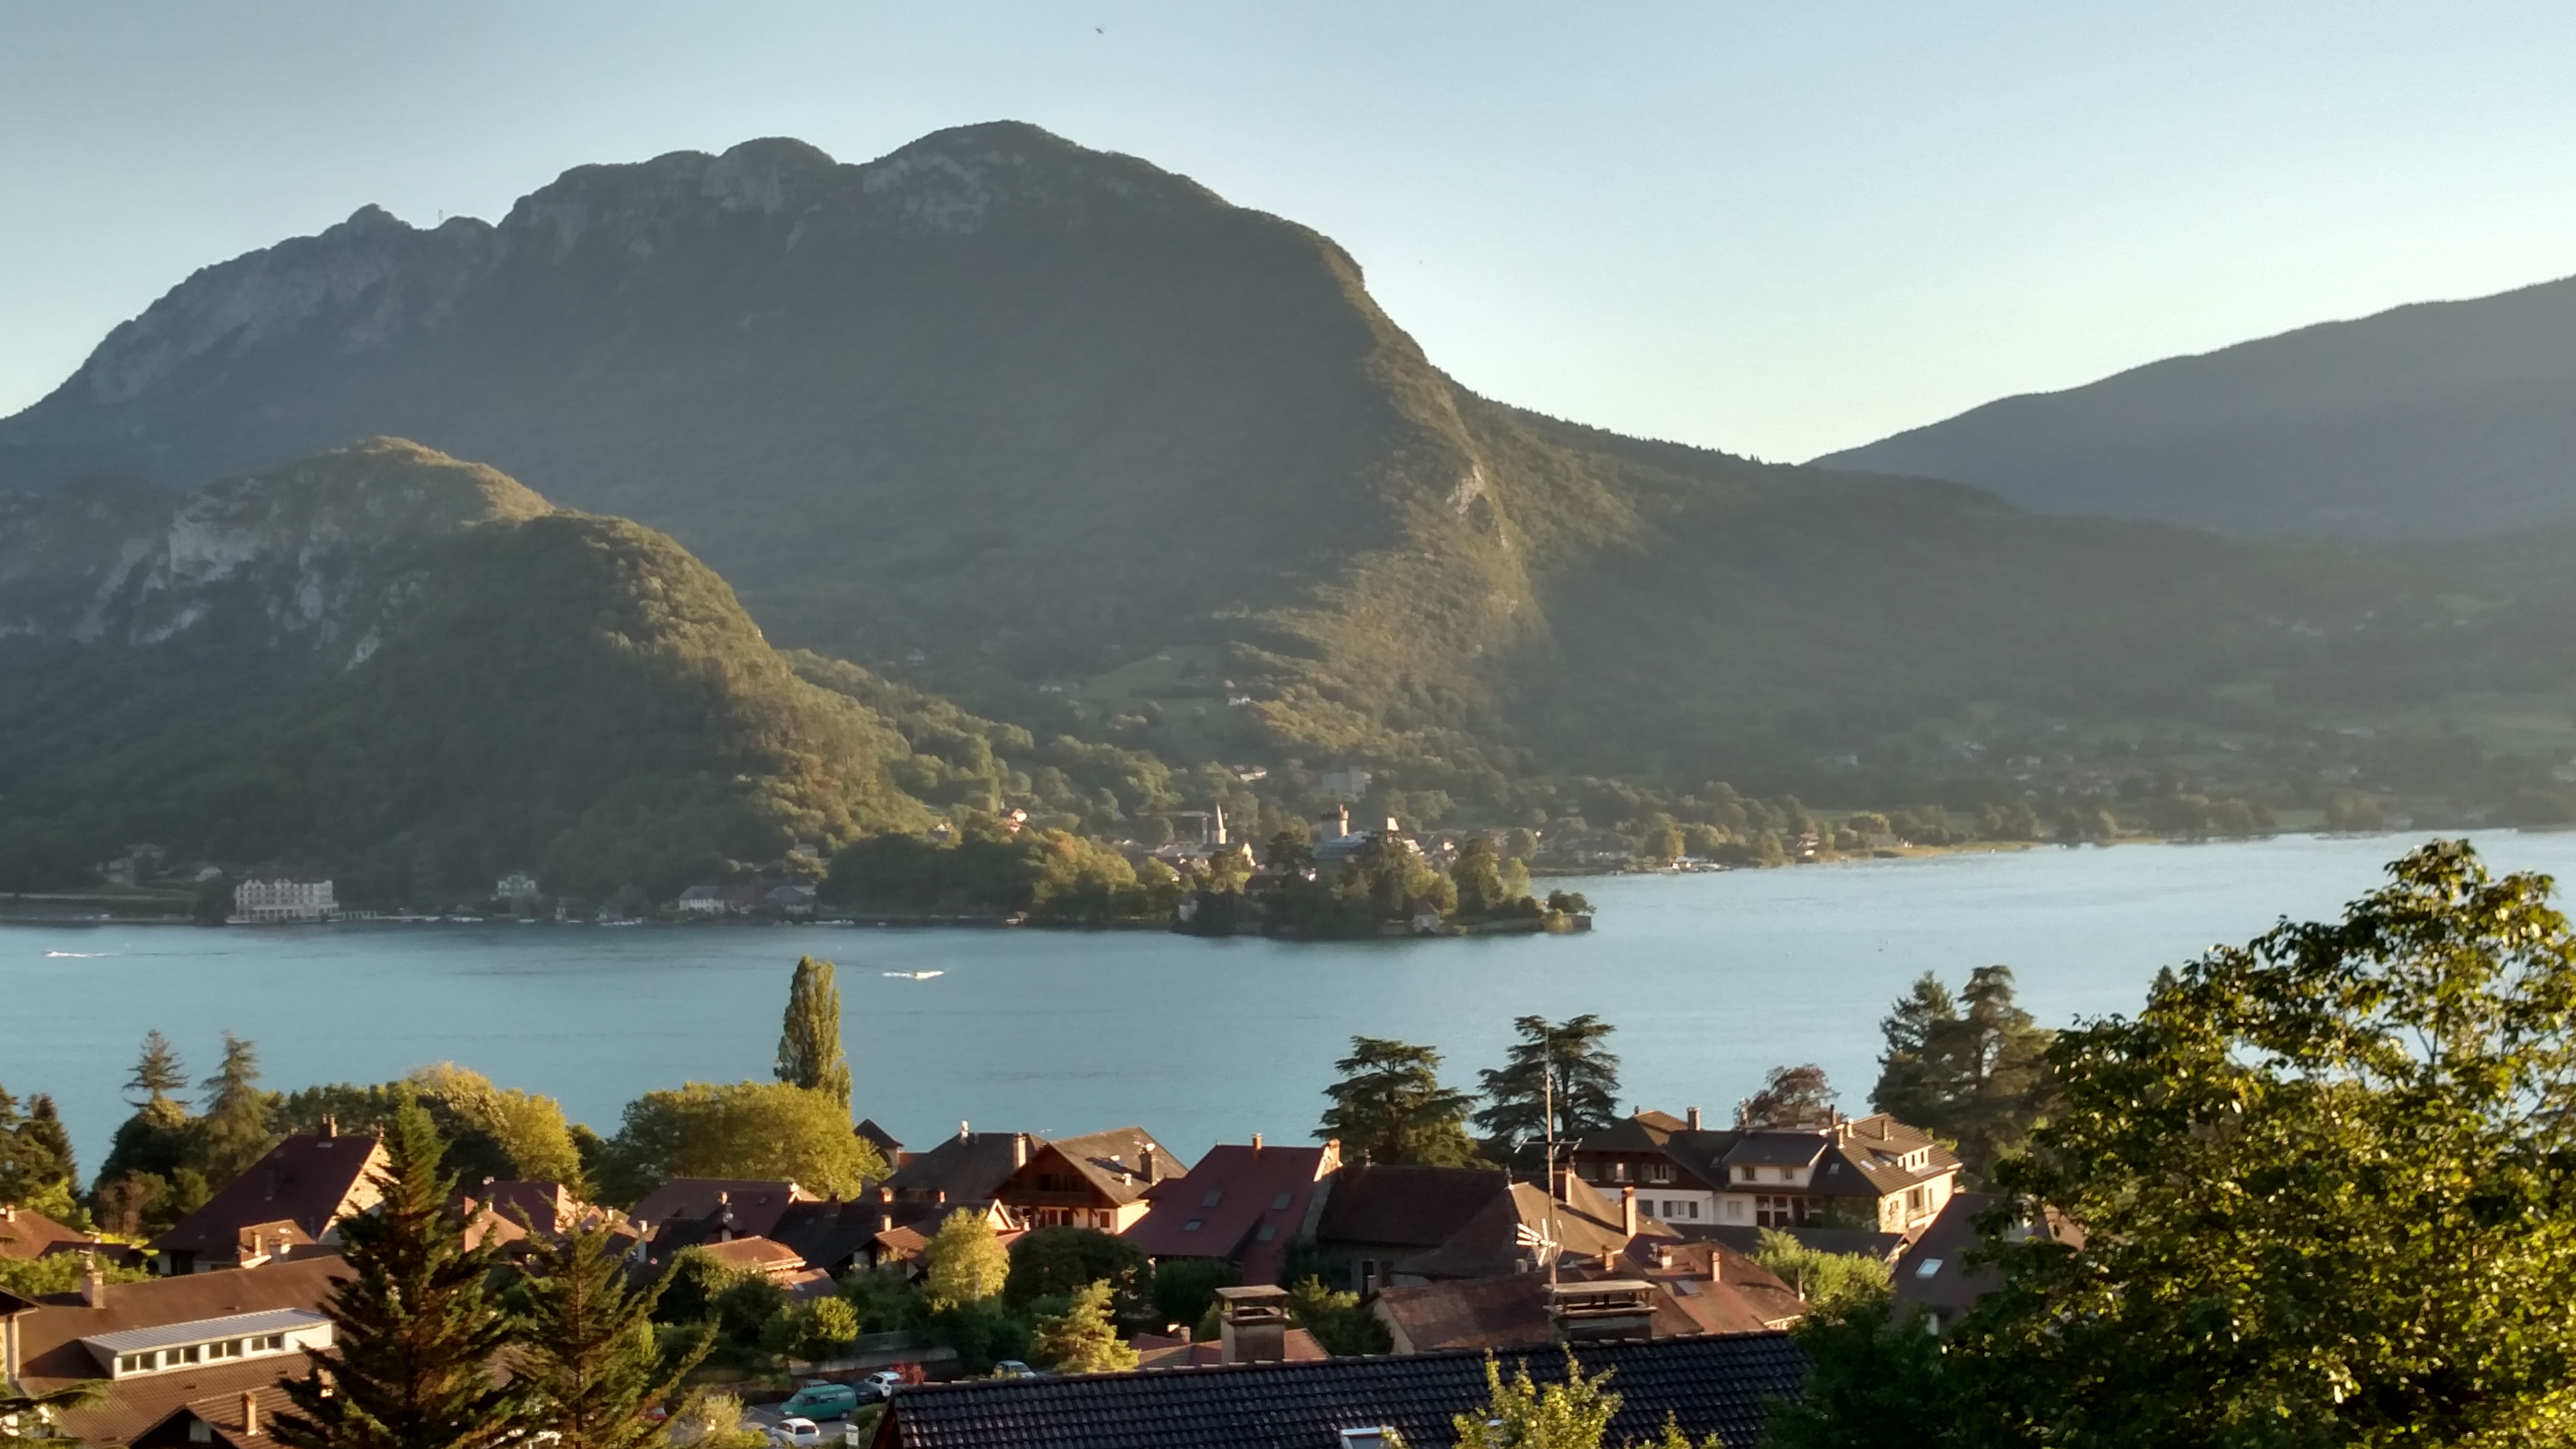 A view from above of the Lac d'Annecy and the village of Talloires